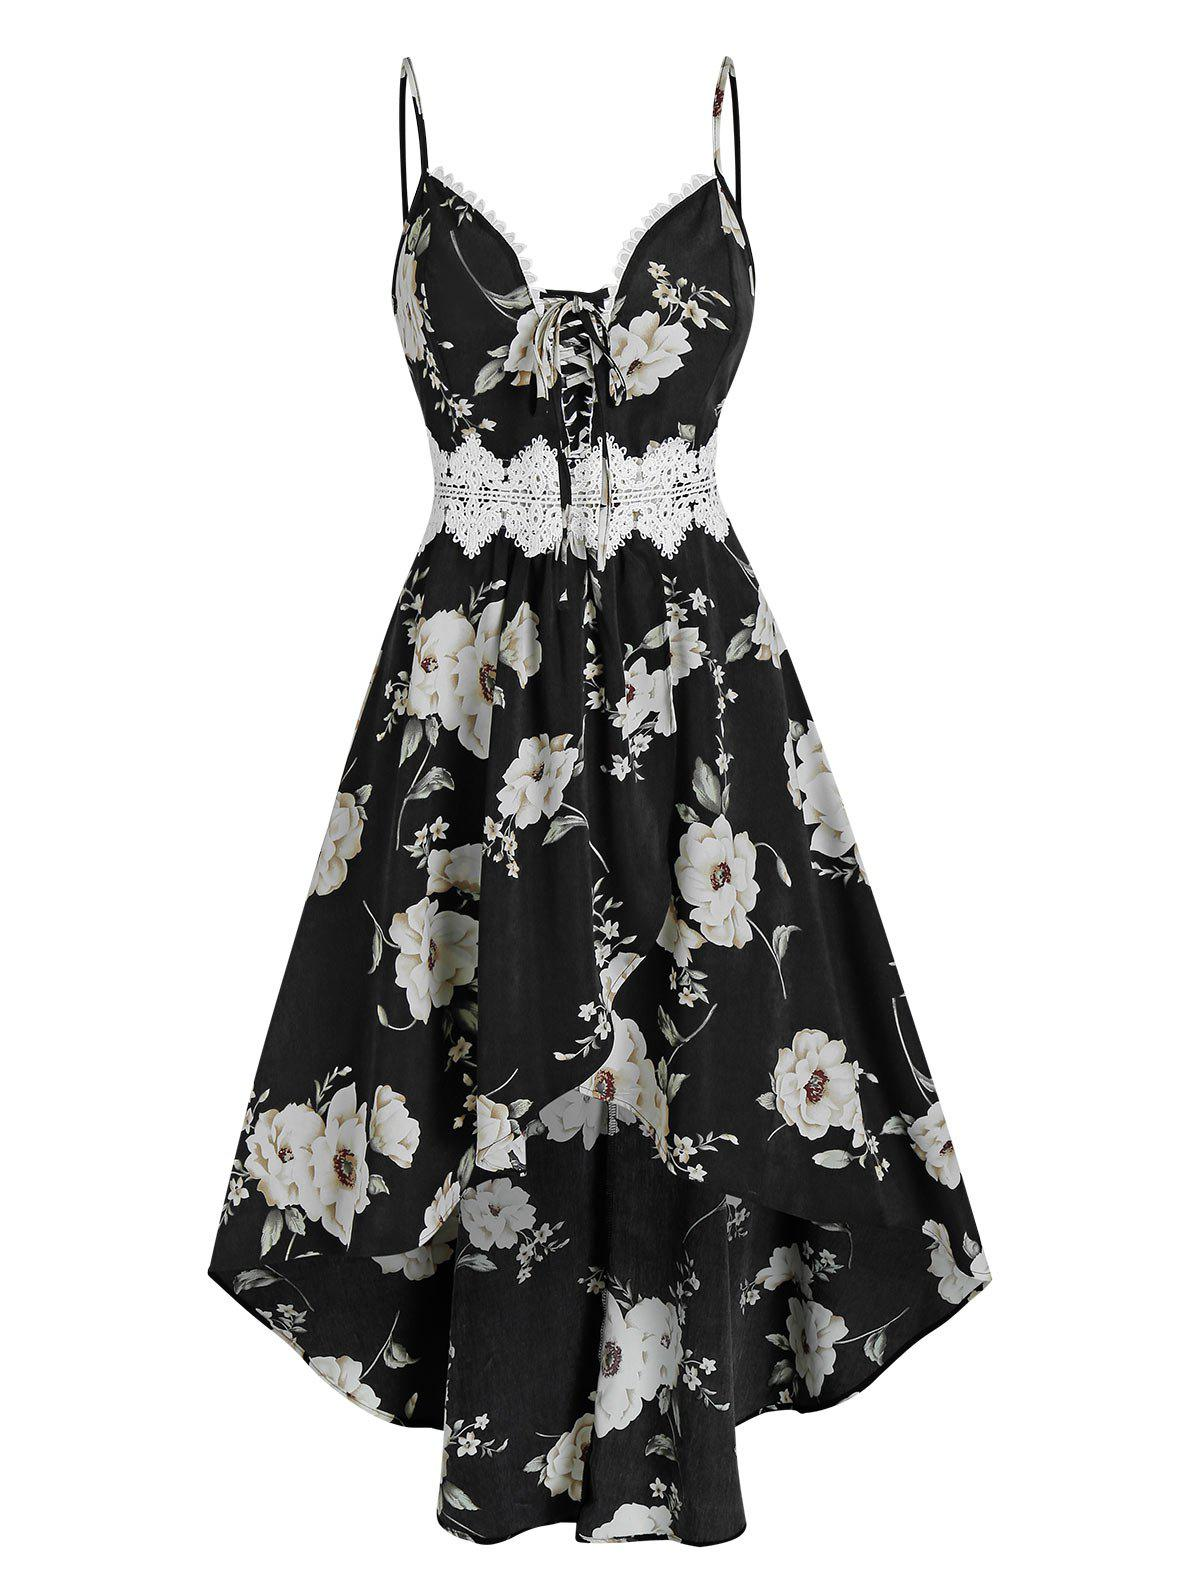 Bowknot Floral Print Lace Panel Cami High Low Dress - BLACK L